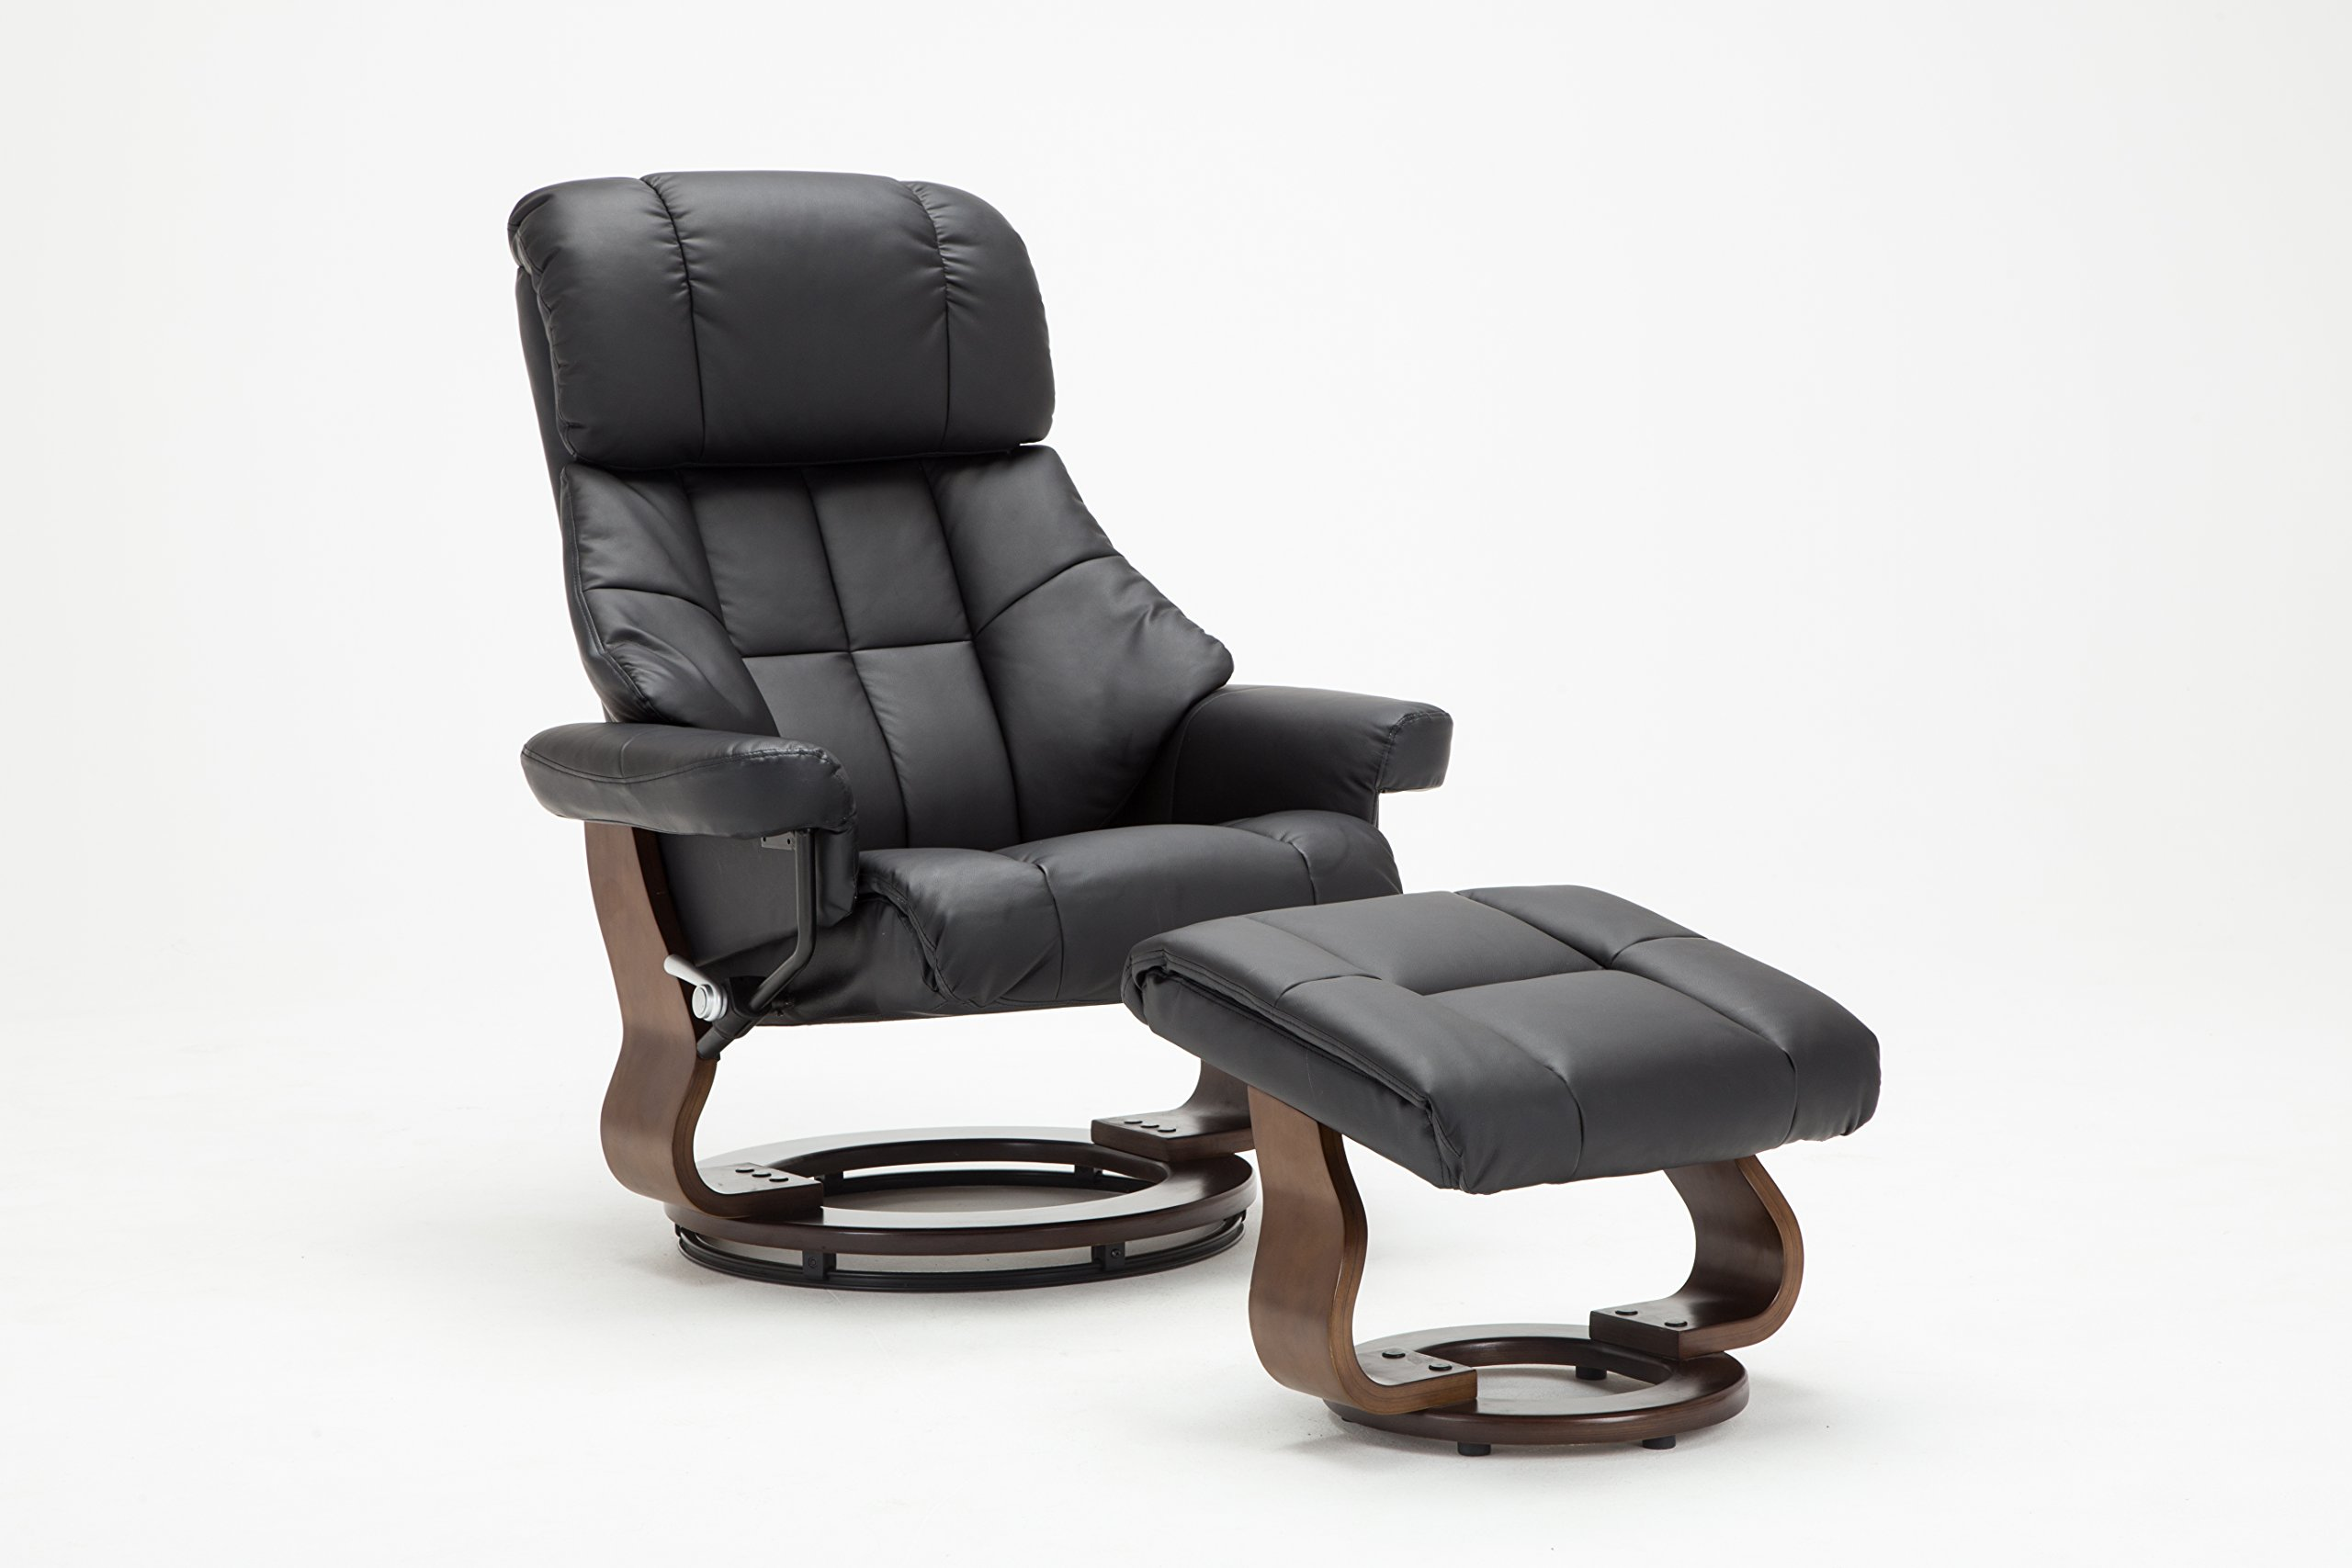 Madison Home Mid Century Modern Bonded Leather Lounge Swivel and Recliner Chair with Foot Stool Ottoman Black